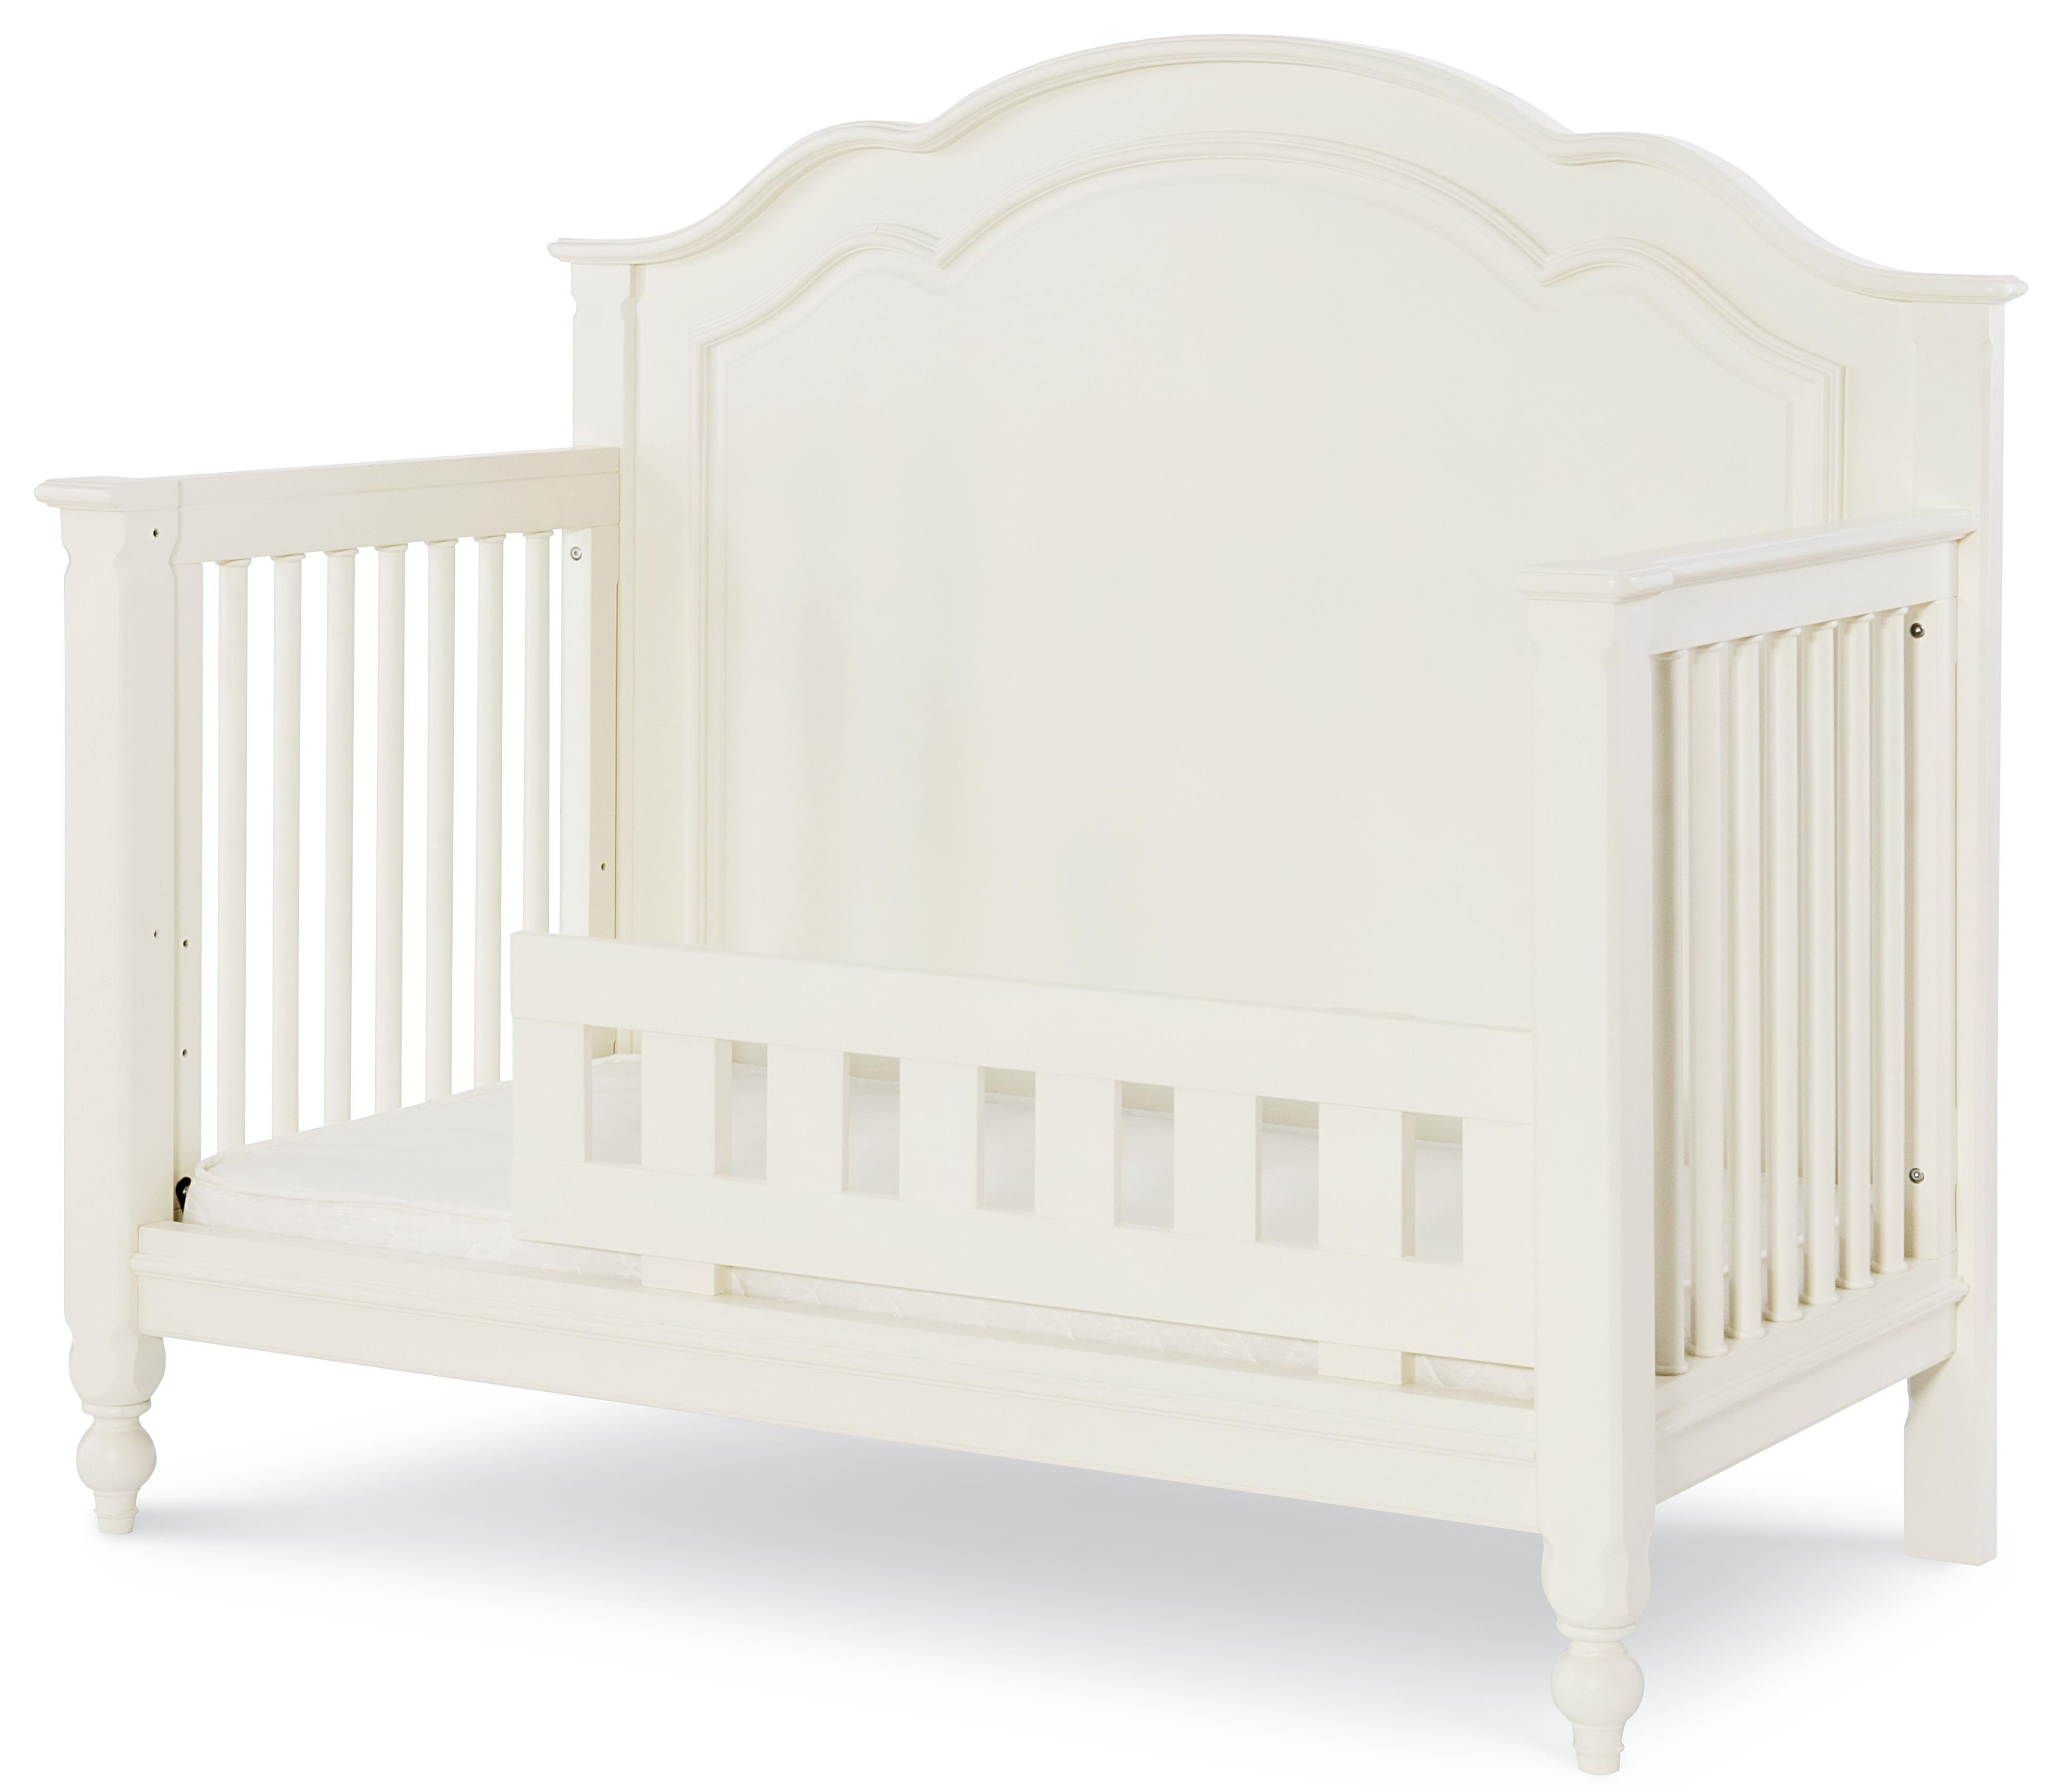 walmart to into size with twin instructions drawers turns converts bedroom can cribs toddler awesome converting that exciting baby turn do crib convert drawer full beds growg